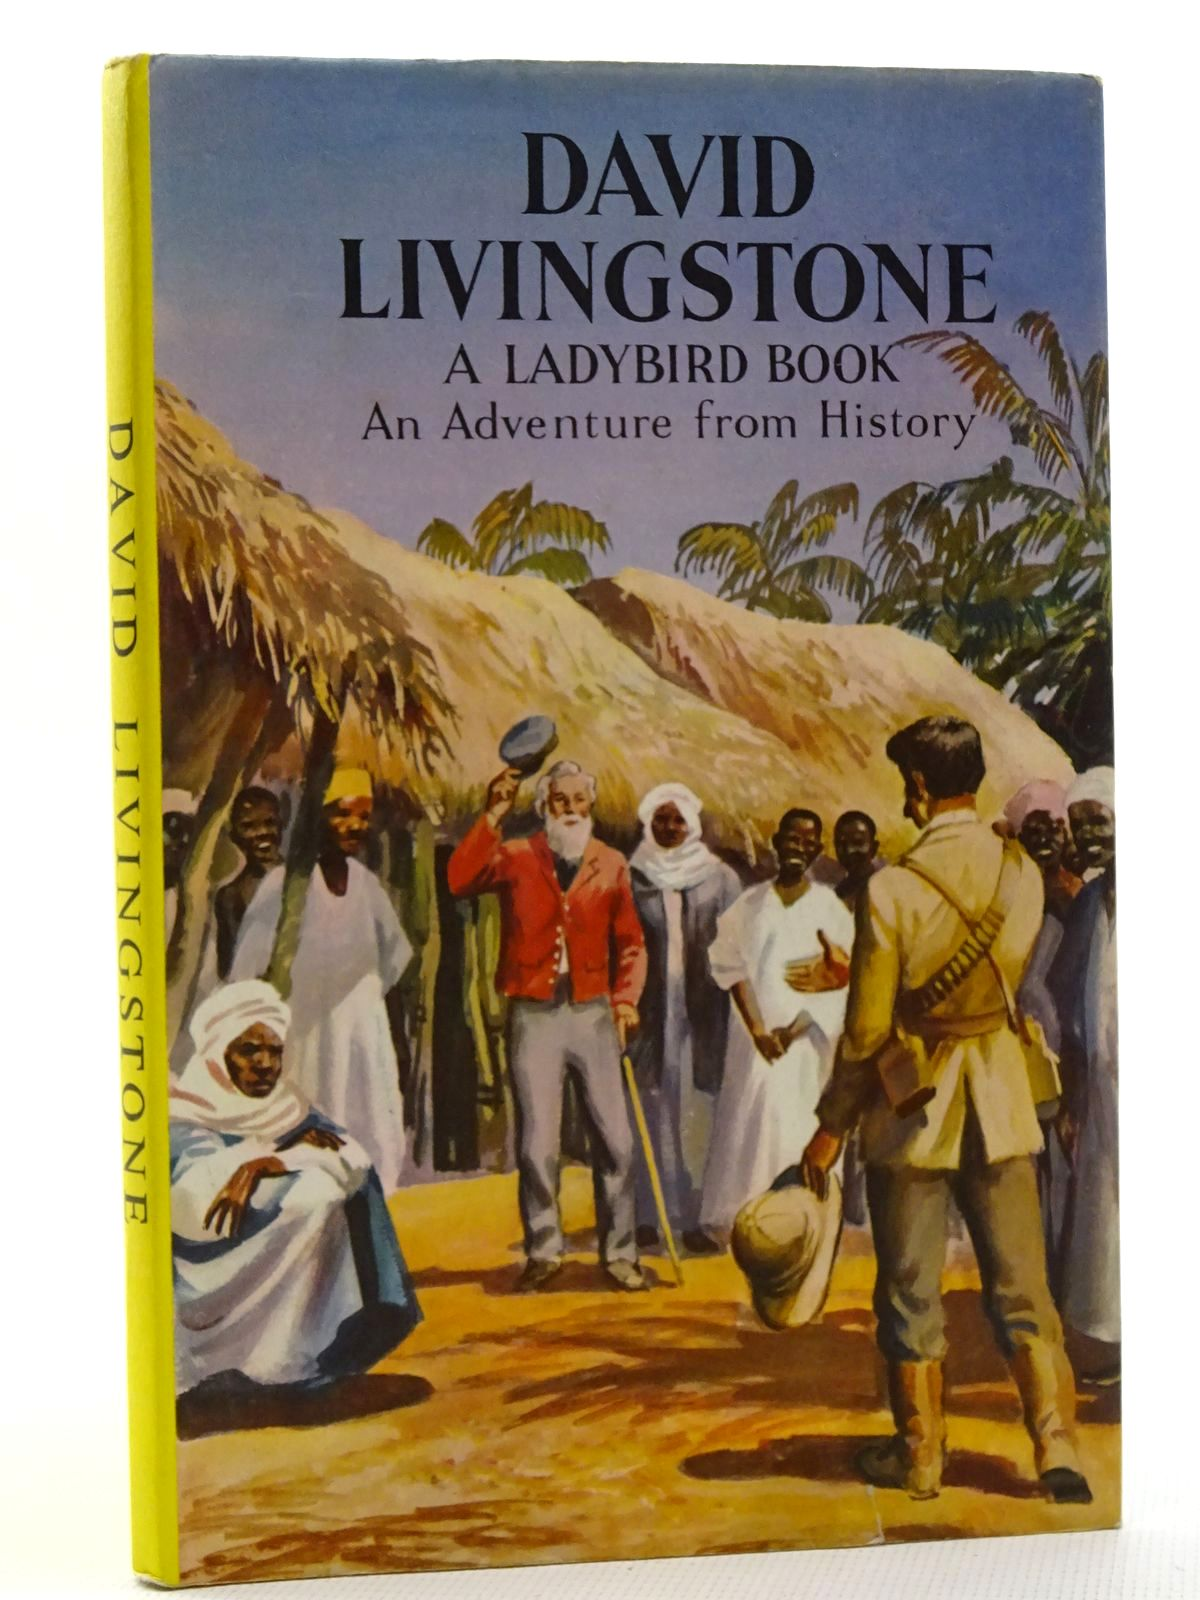 Photo of DAVID LIVINGSTONE written by Peach, L. Du Garde illustrated by Kenney, John published by Wills & Hepworth Ltd. (STOCK CODE: 2125041)  for sale by Stella & Rose's Books